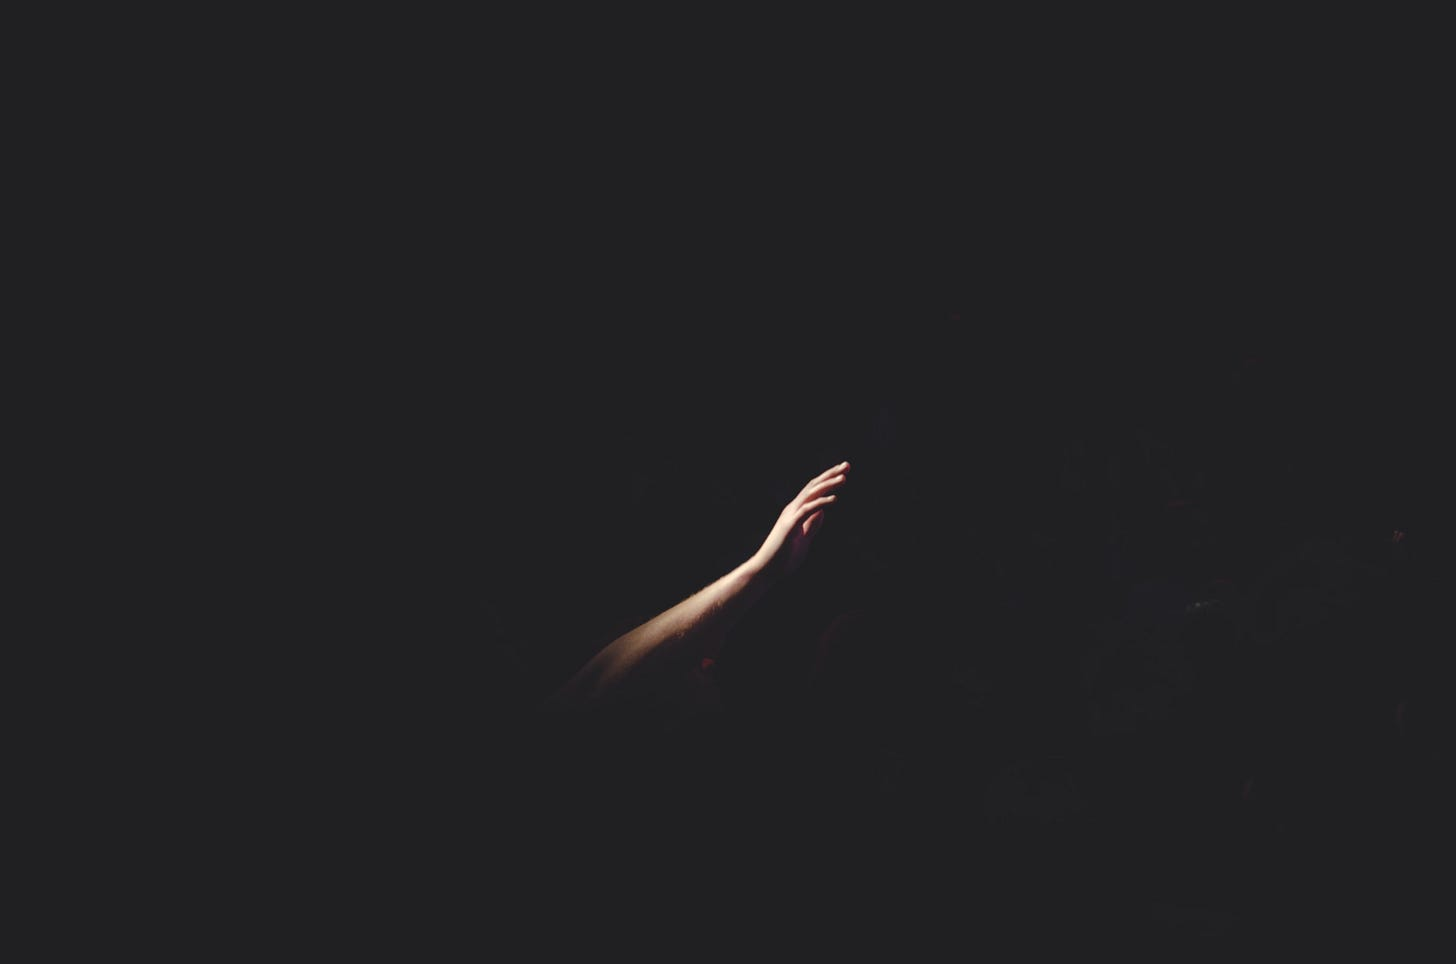 arm reaching out in darkness